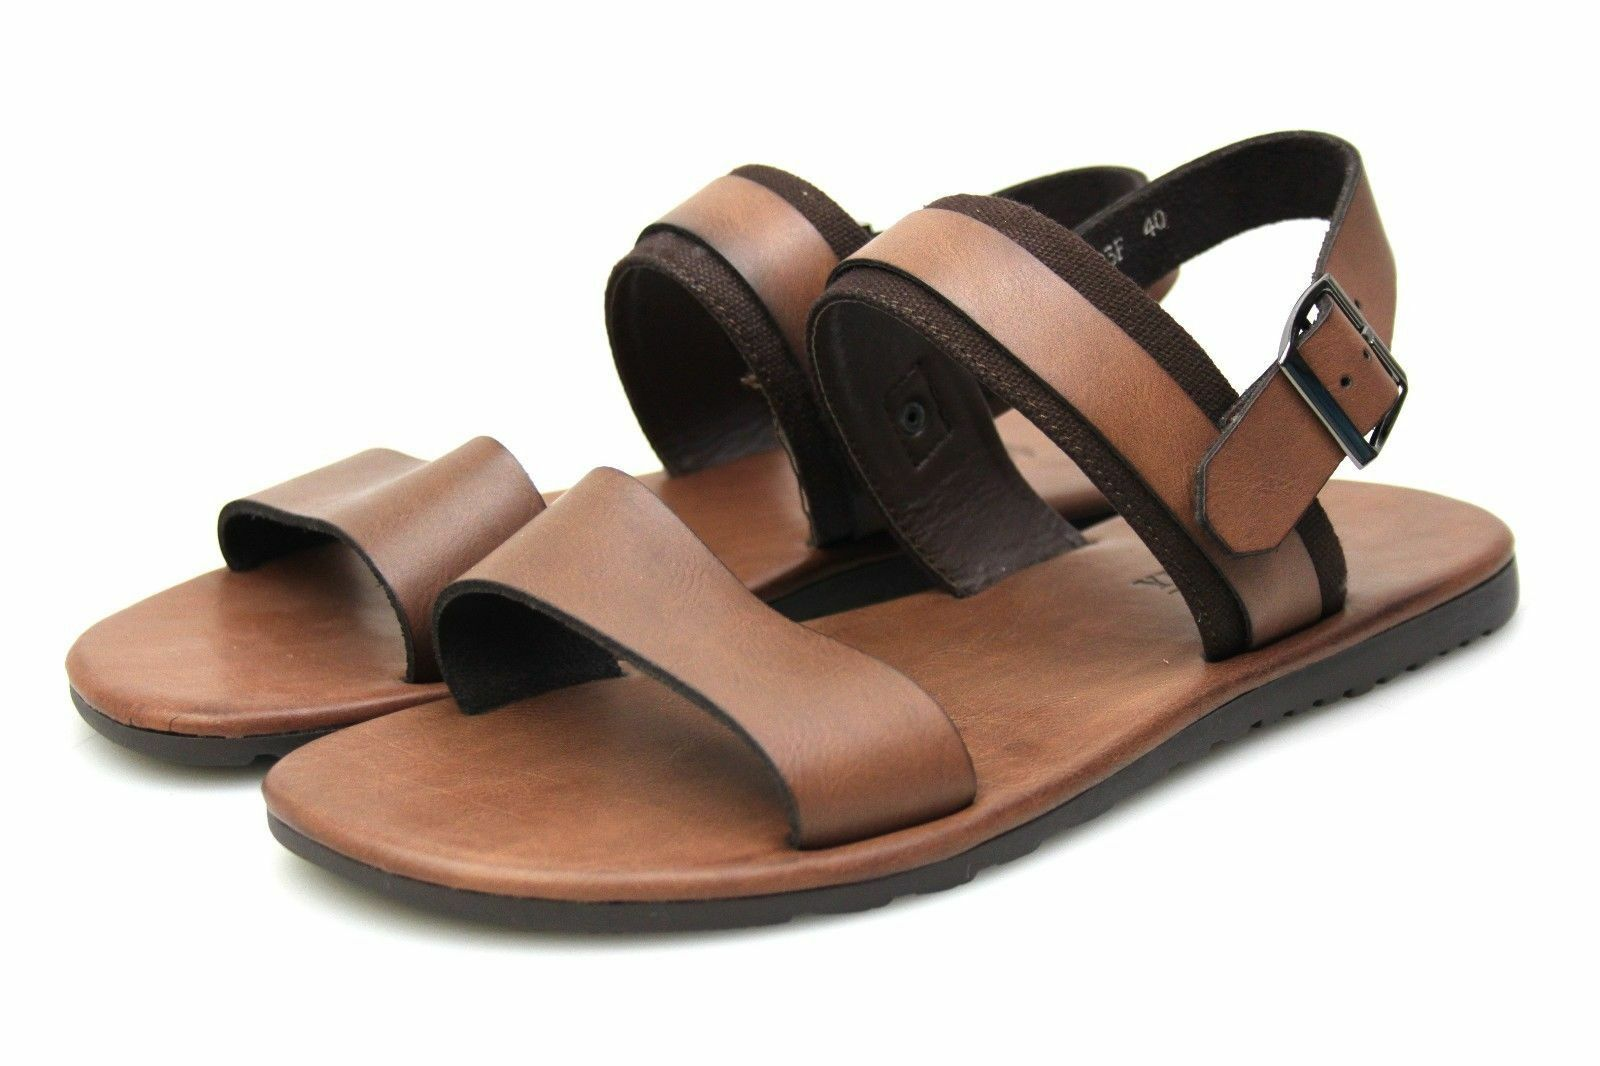 31c988e5f64 Mens Tan Brown Leather Summer Open Toe Strap Beach Sandals Holiday ...